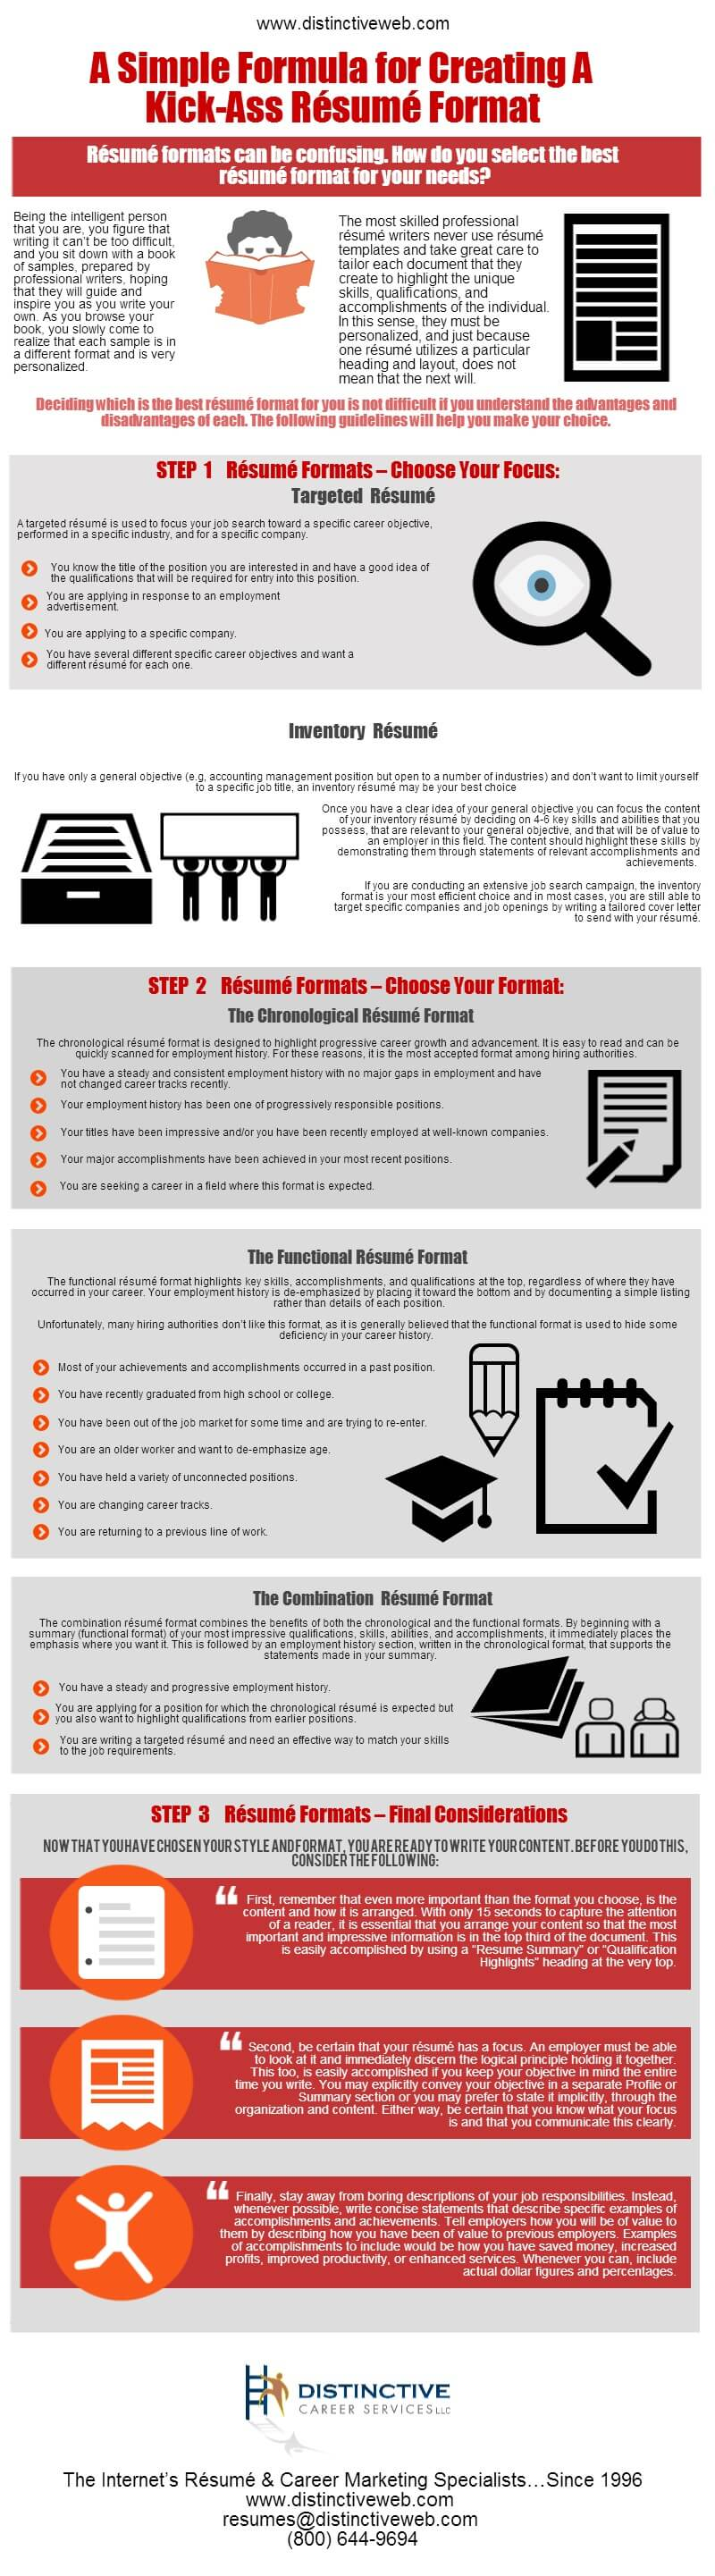 So, How Do You Select The Best Resume Format For Your Needs? The Following  Infographic Details The Guidelines That Will Help You Make Your Choice.